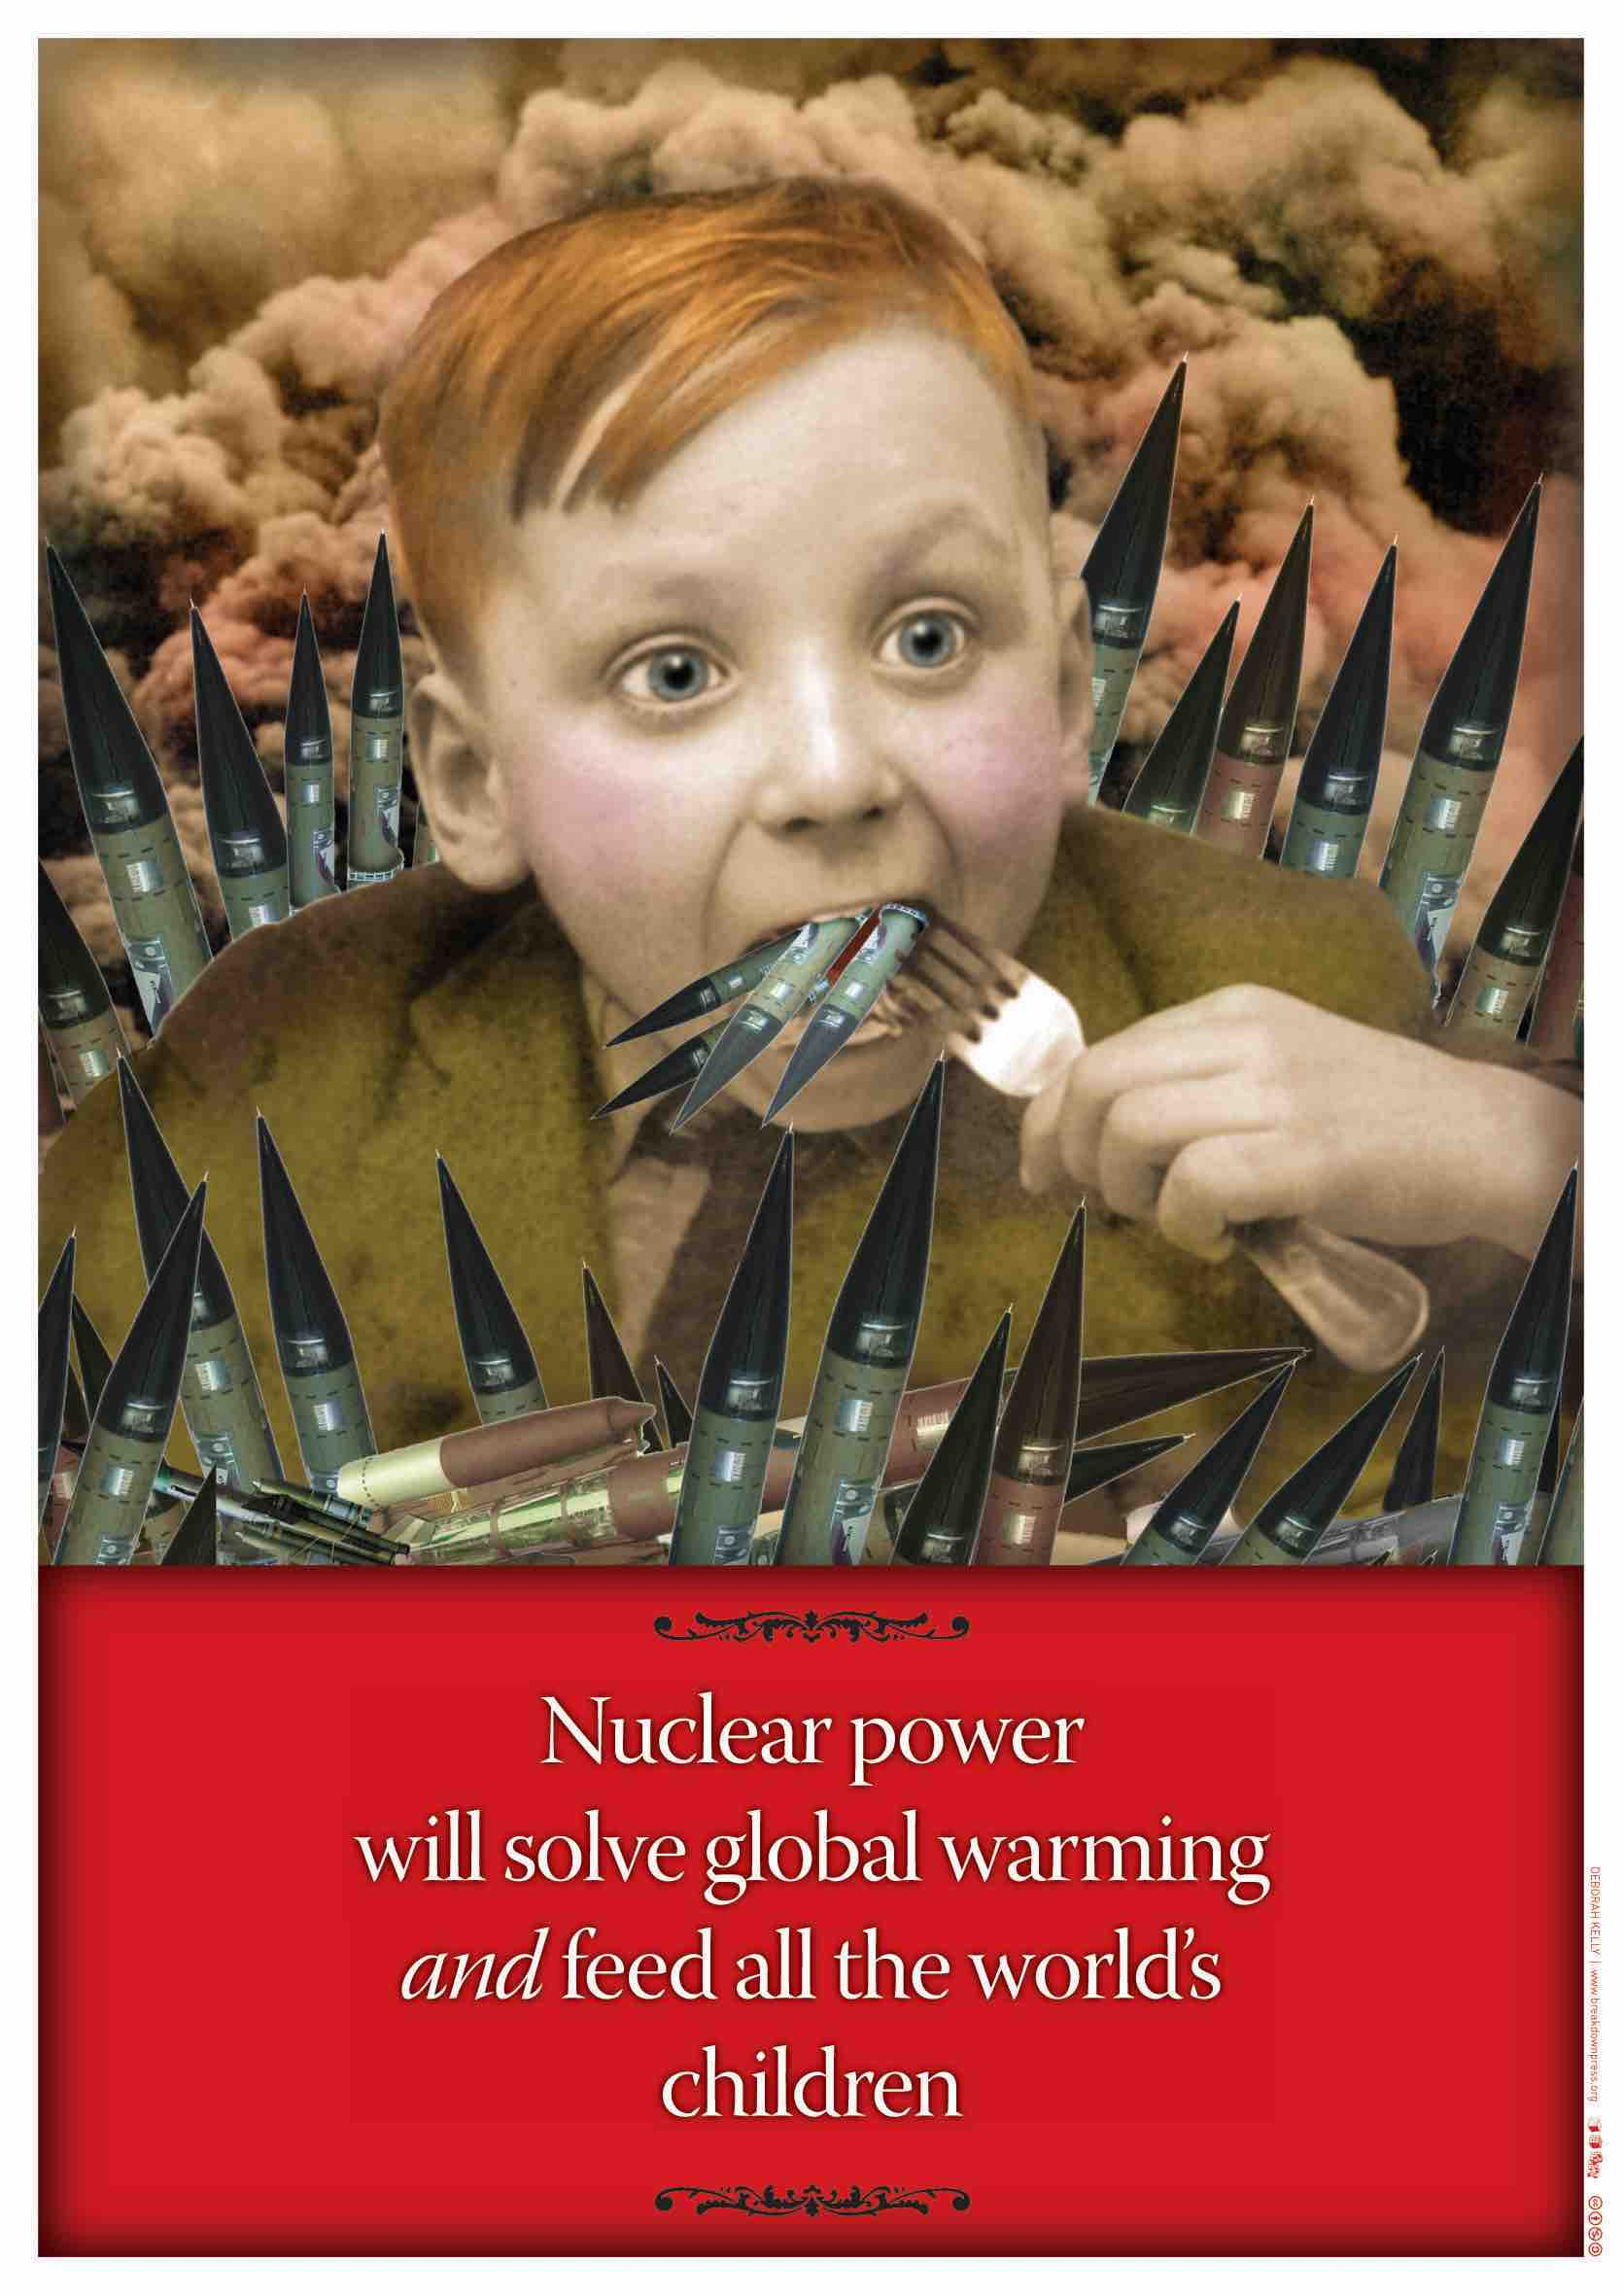 NP_solve_GW_and_feed_children_missiles_(2).jpg